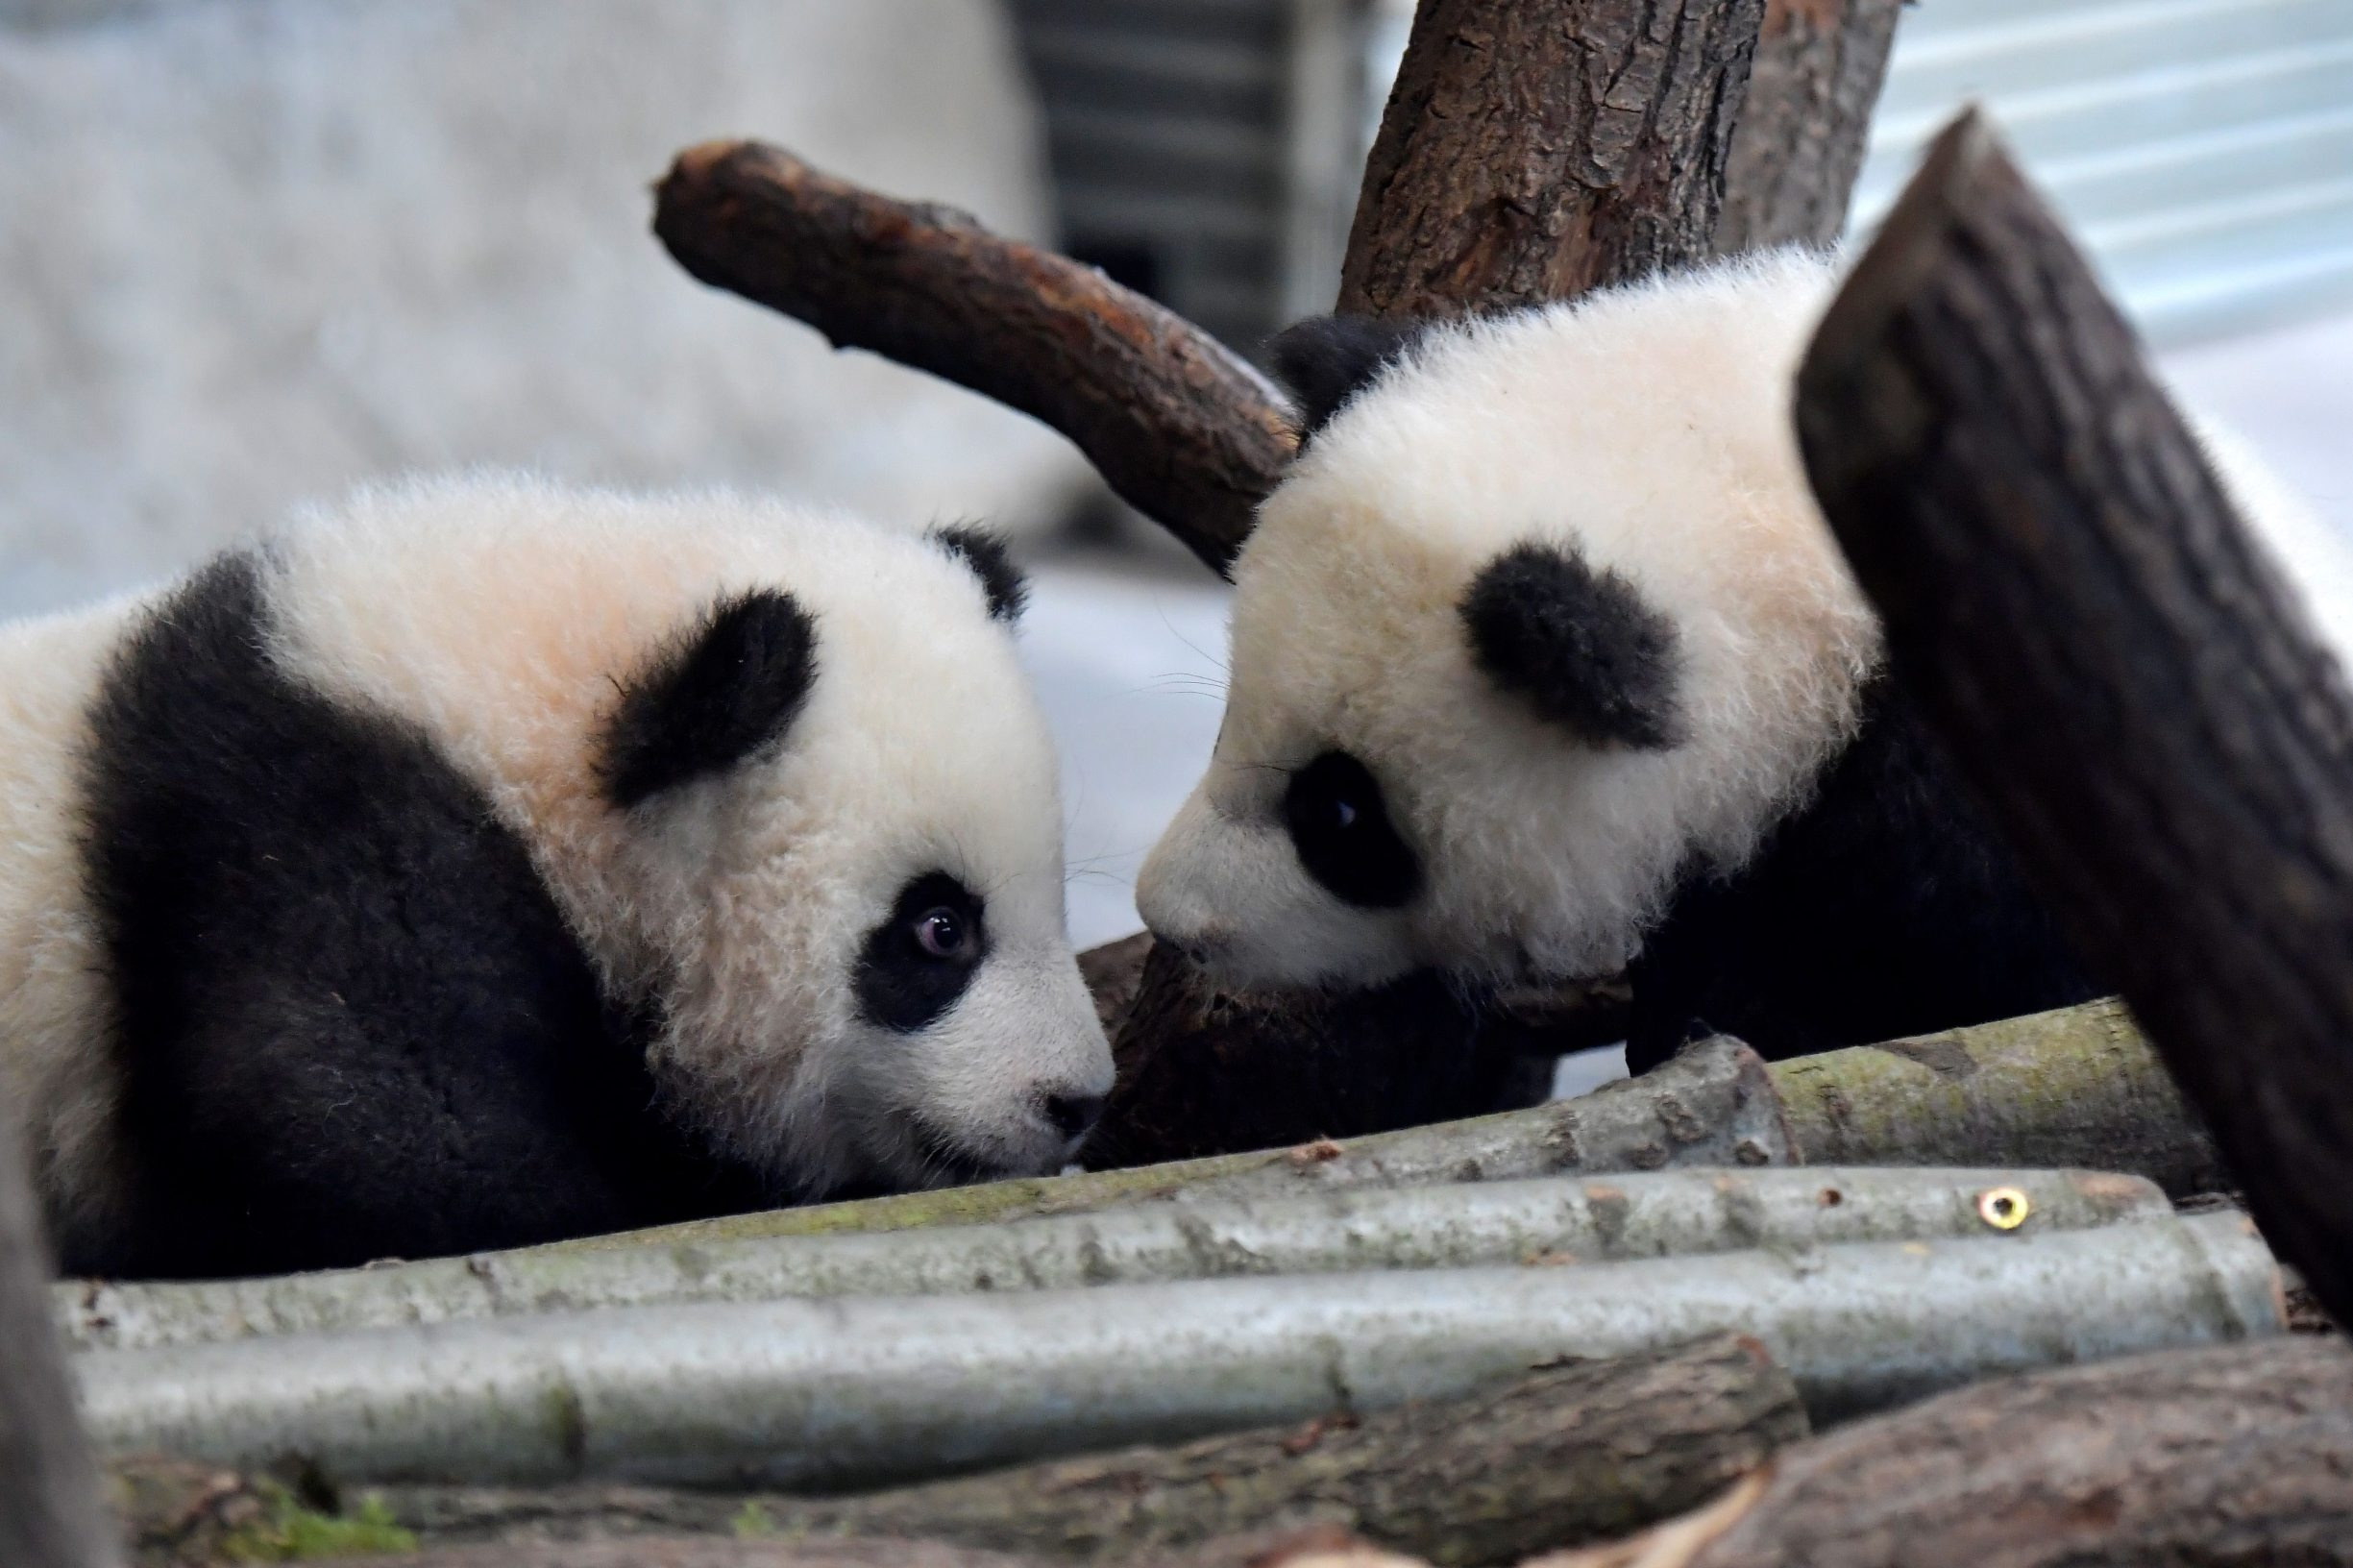 A picture taken on January 29, 2020 shows Meng Yuan and Meng Xiang, two Berlin-born Chinese panda cubs, at their enclosure during their first presentation to the public at the Zoologischer Garten zoo in Berlin. - Meng Meng gave birth to twins on August 31, 2019. On loan from China, Meng Meng and male panda Jiao Qing arrived in Berlin in June 2017. While the cubs, Meng Yuan and Meng Xiang, are born in Berlin, they remain Chinese and must be returned to China within four years after they have been weaned. (Photo by Tobias SCHWARZ / AFP)